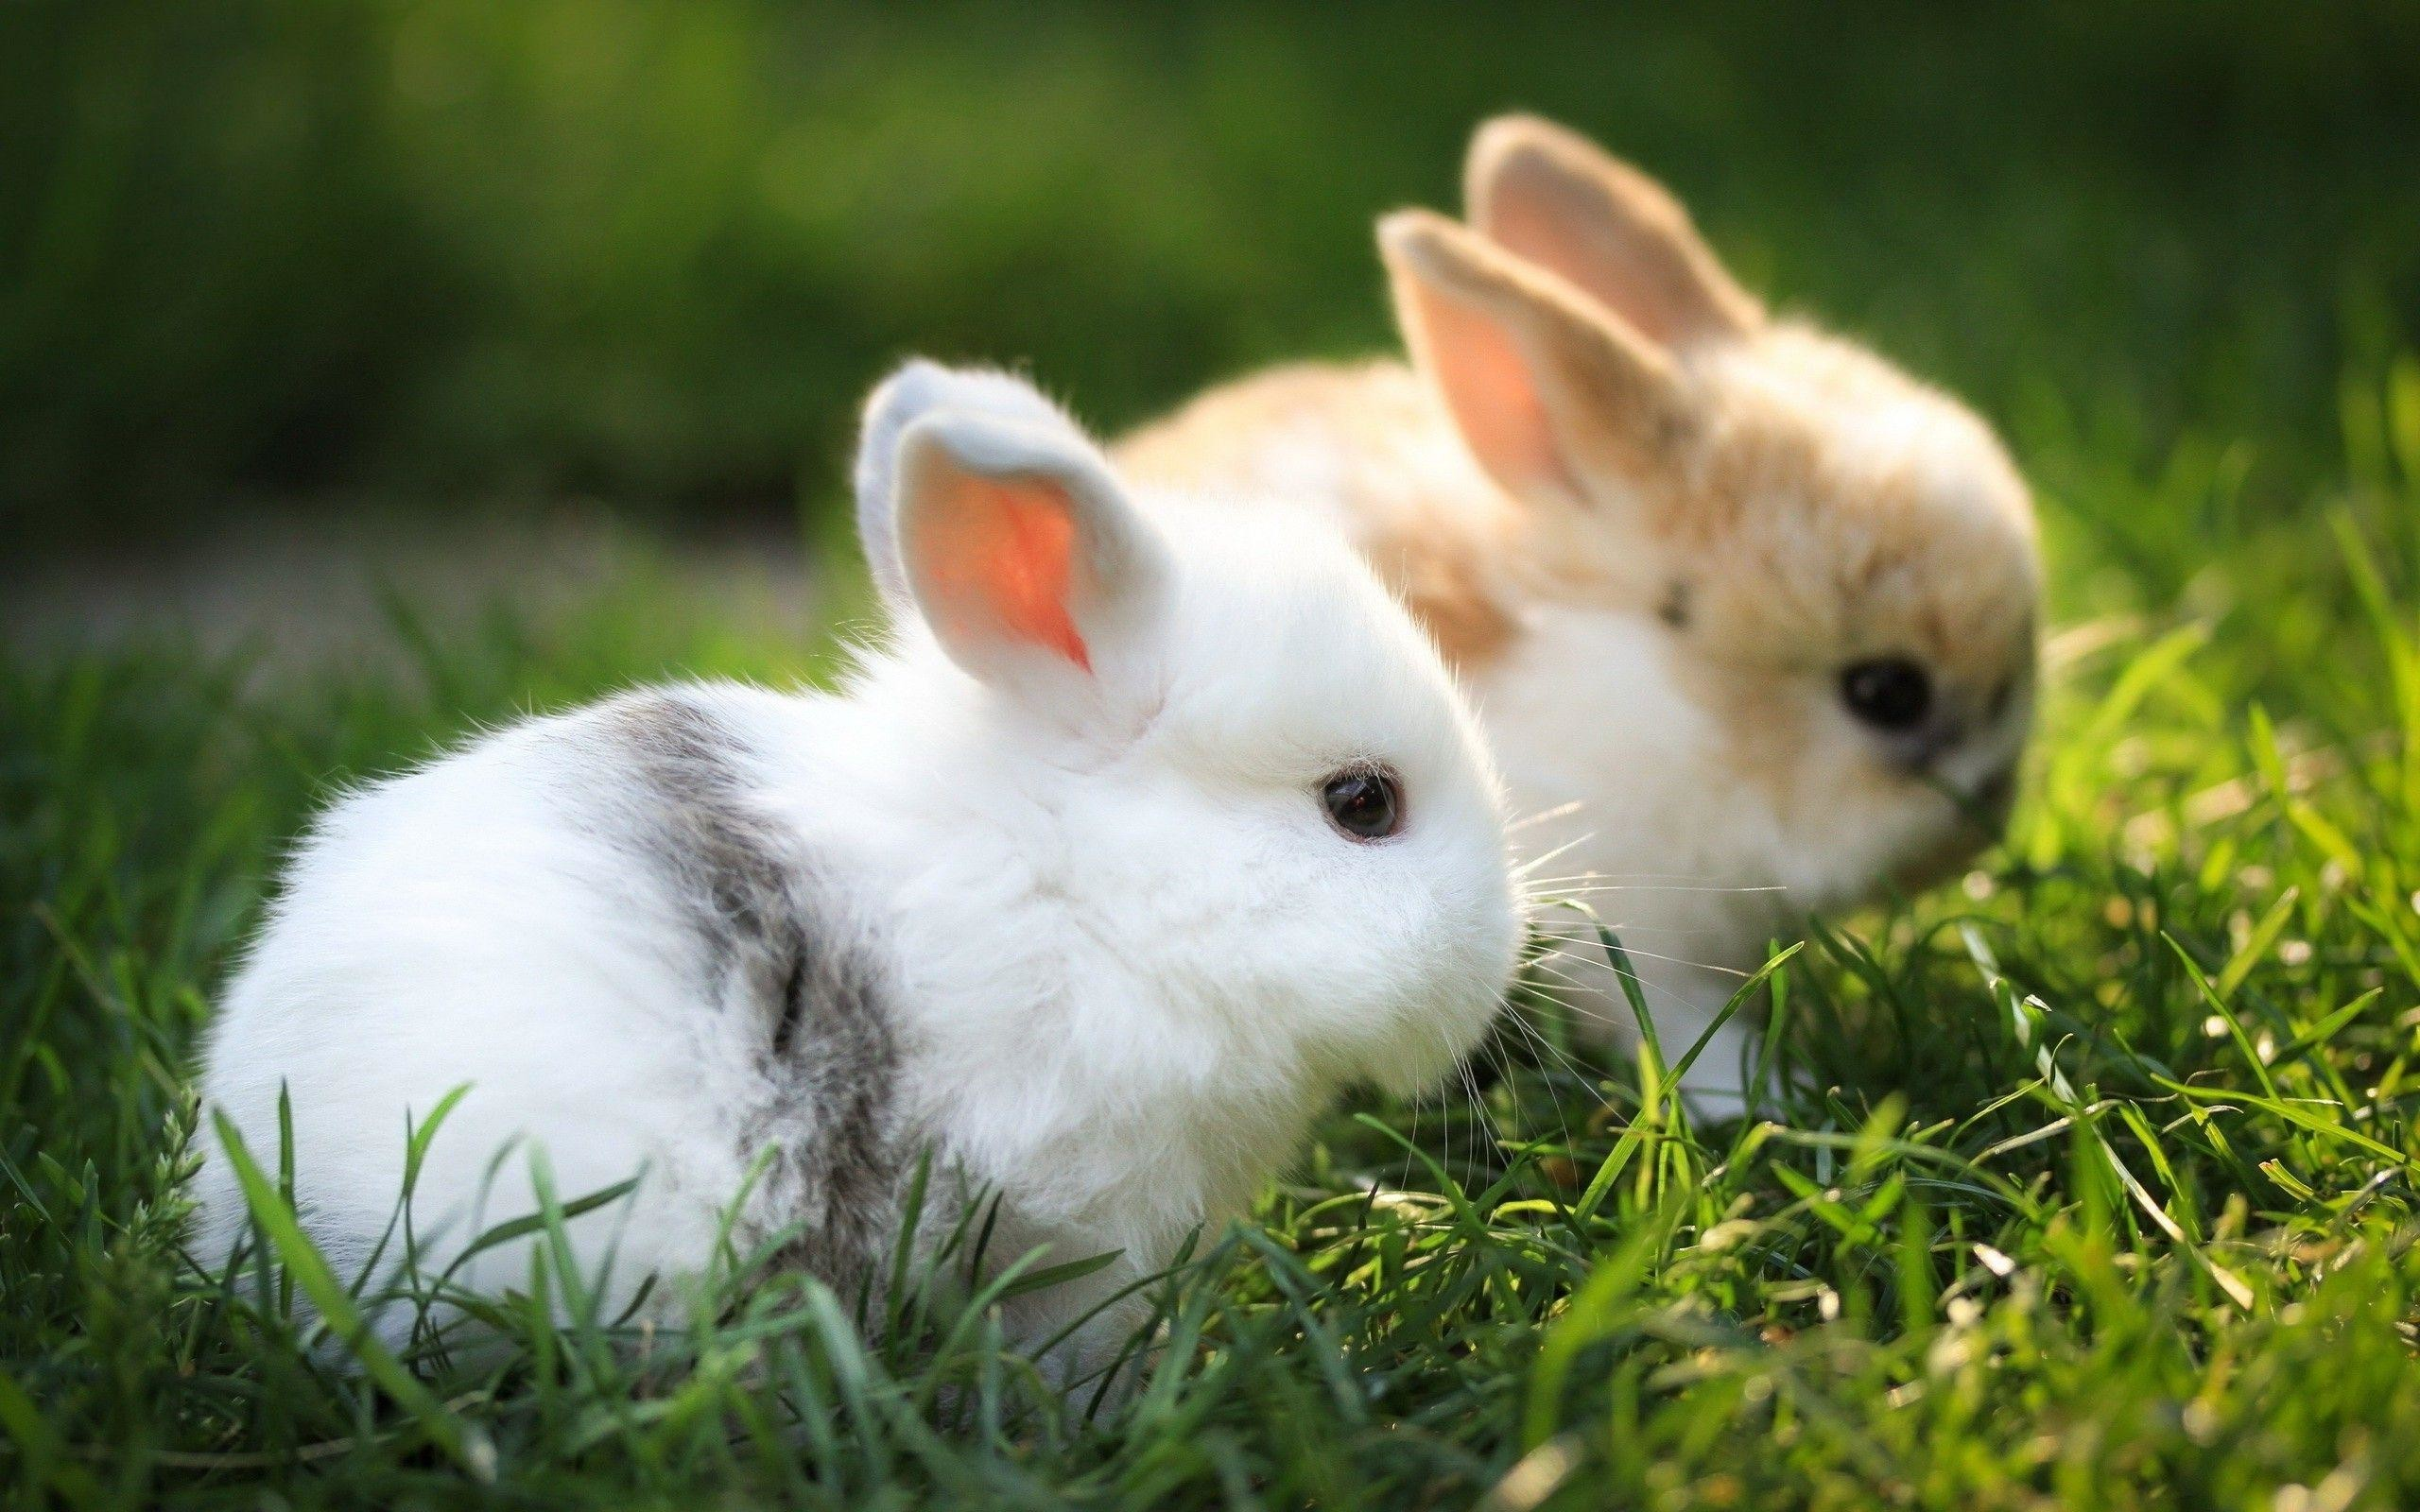 Baby Bunnies Wallpaper 67 Images